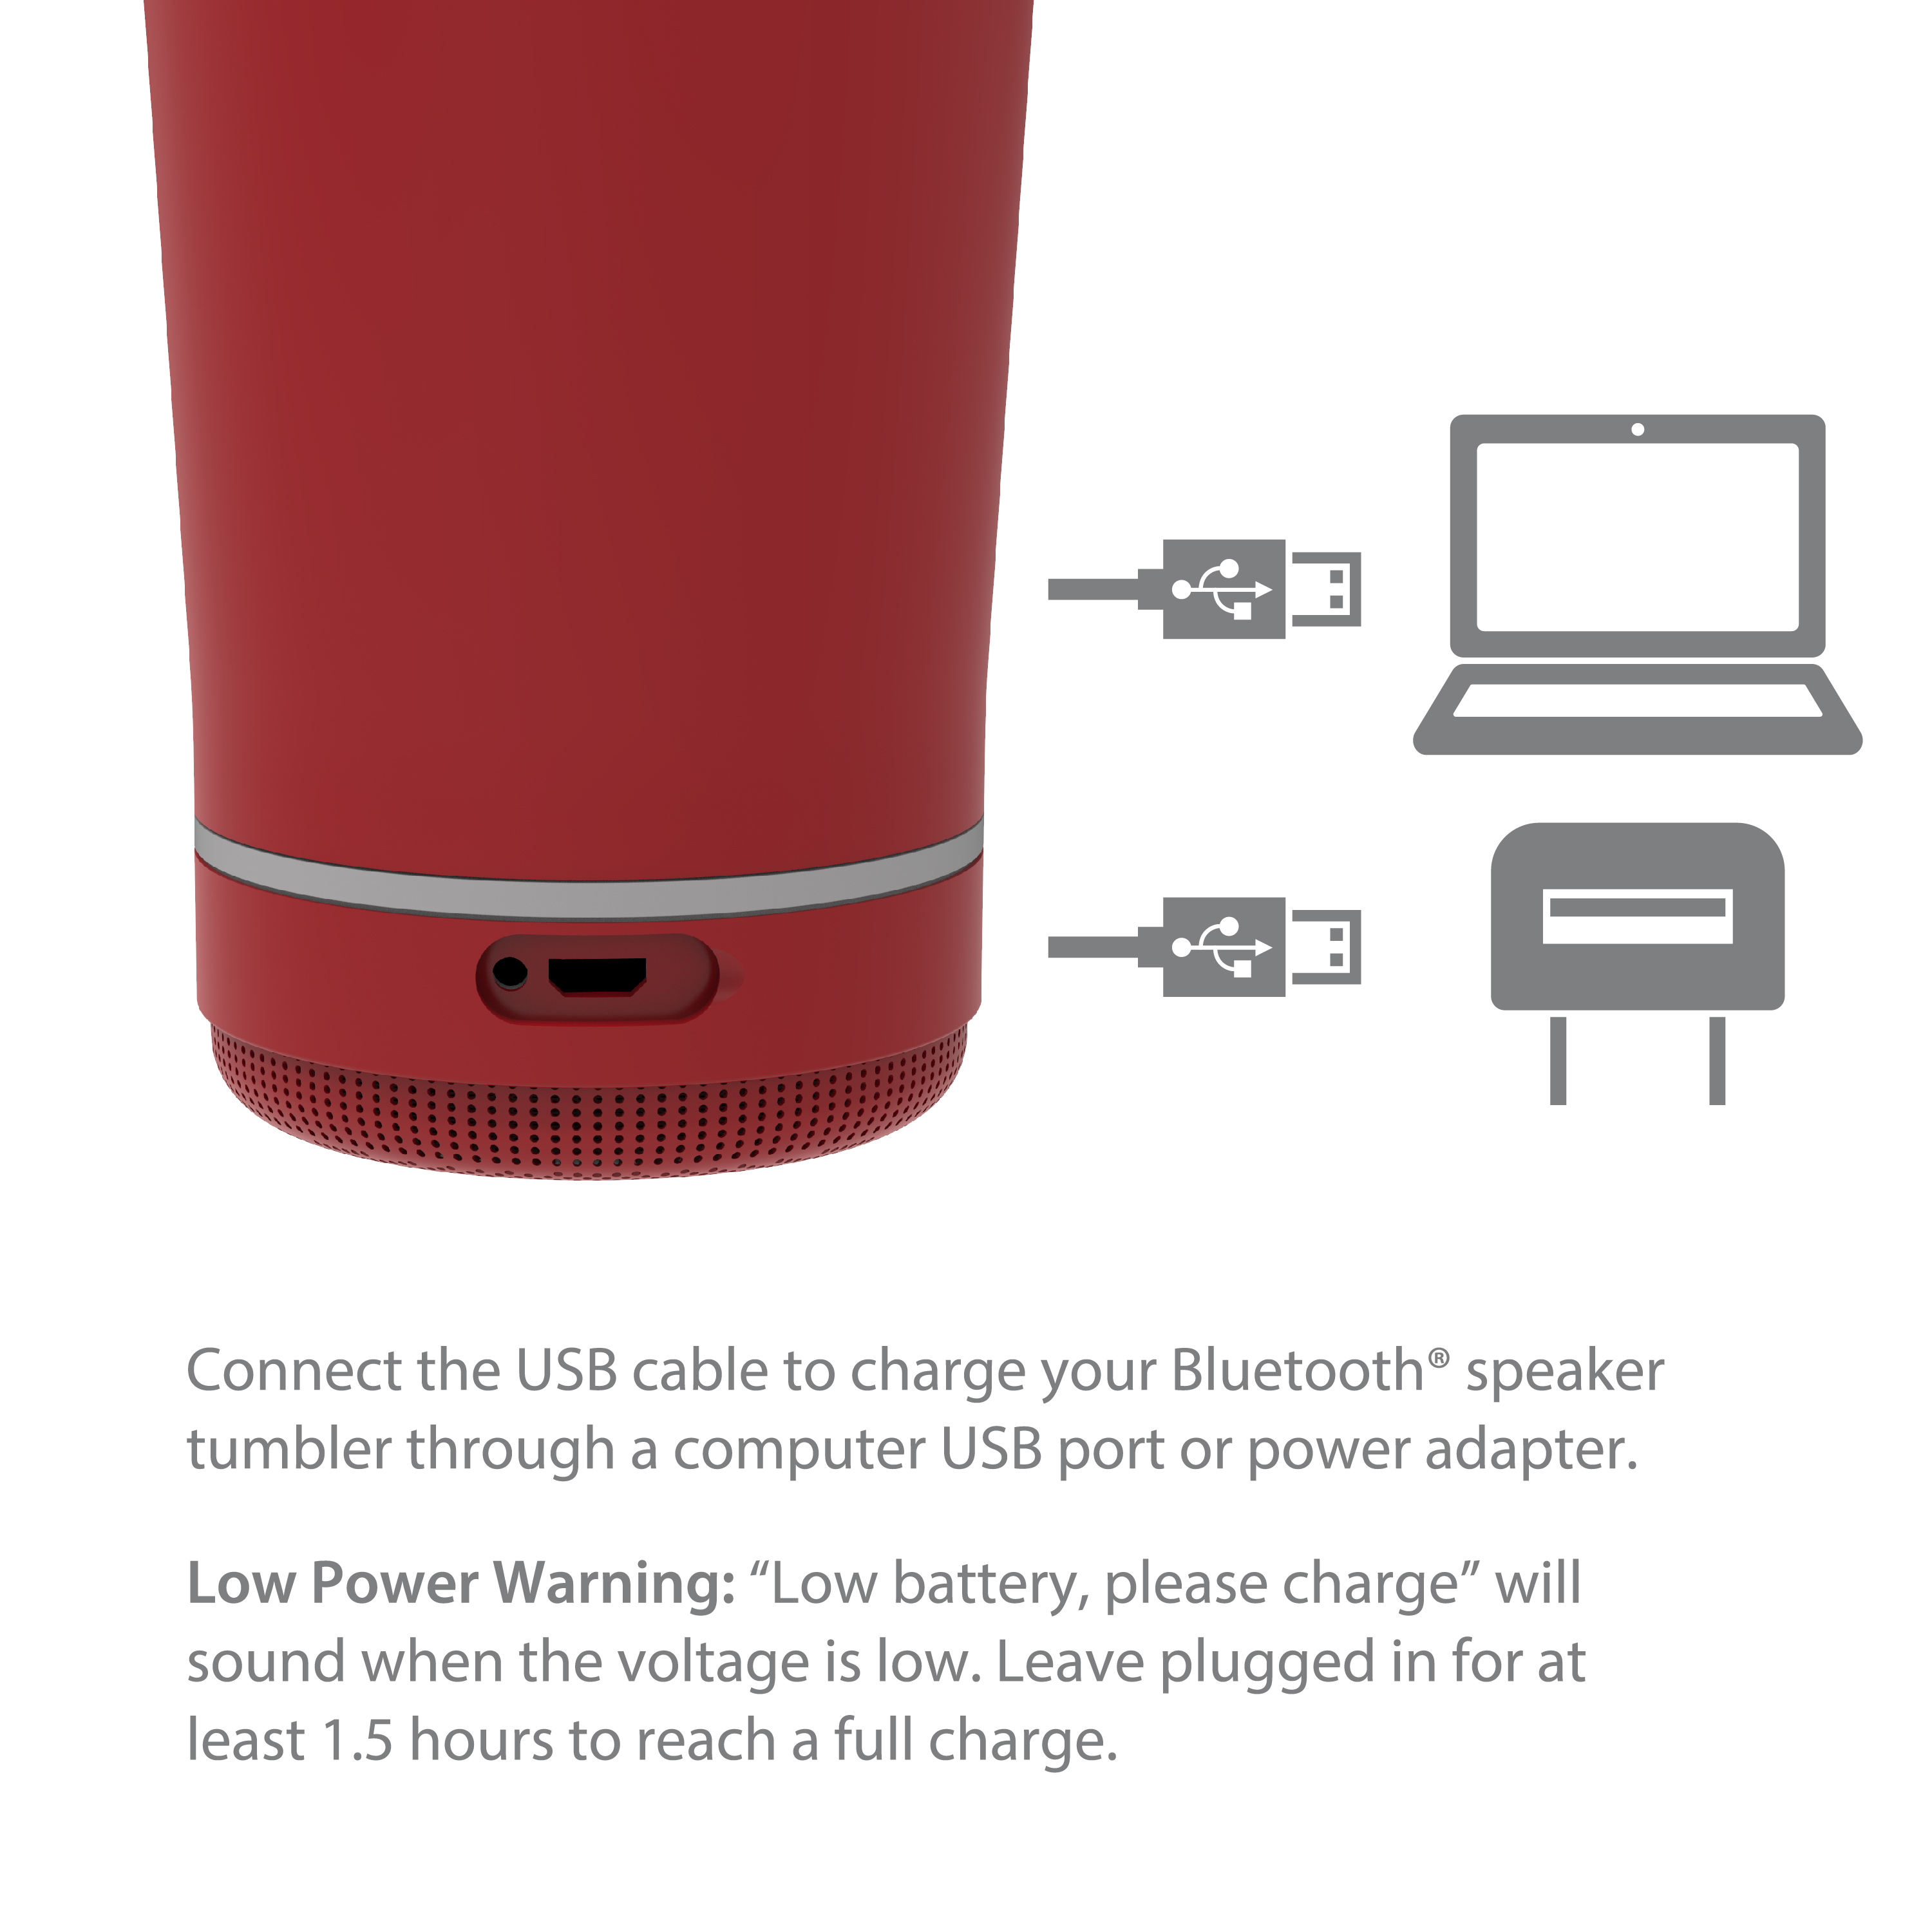 Zak Play 18 ounce Stainless Steel Tumbler with Bluetooth Speaker, Red slideshow image 7